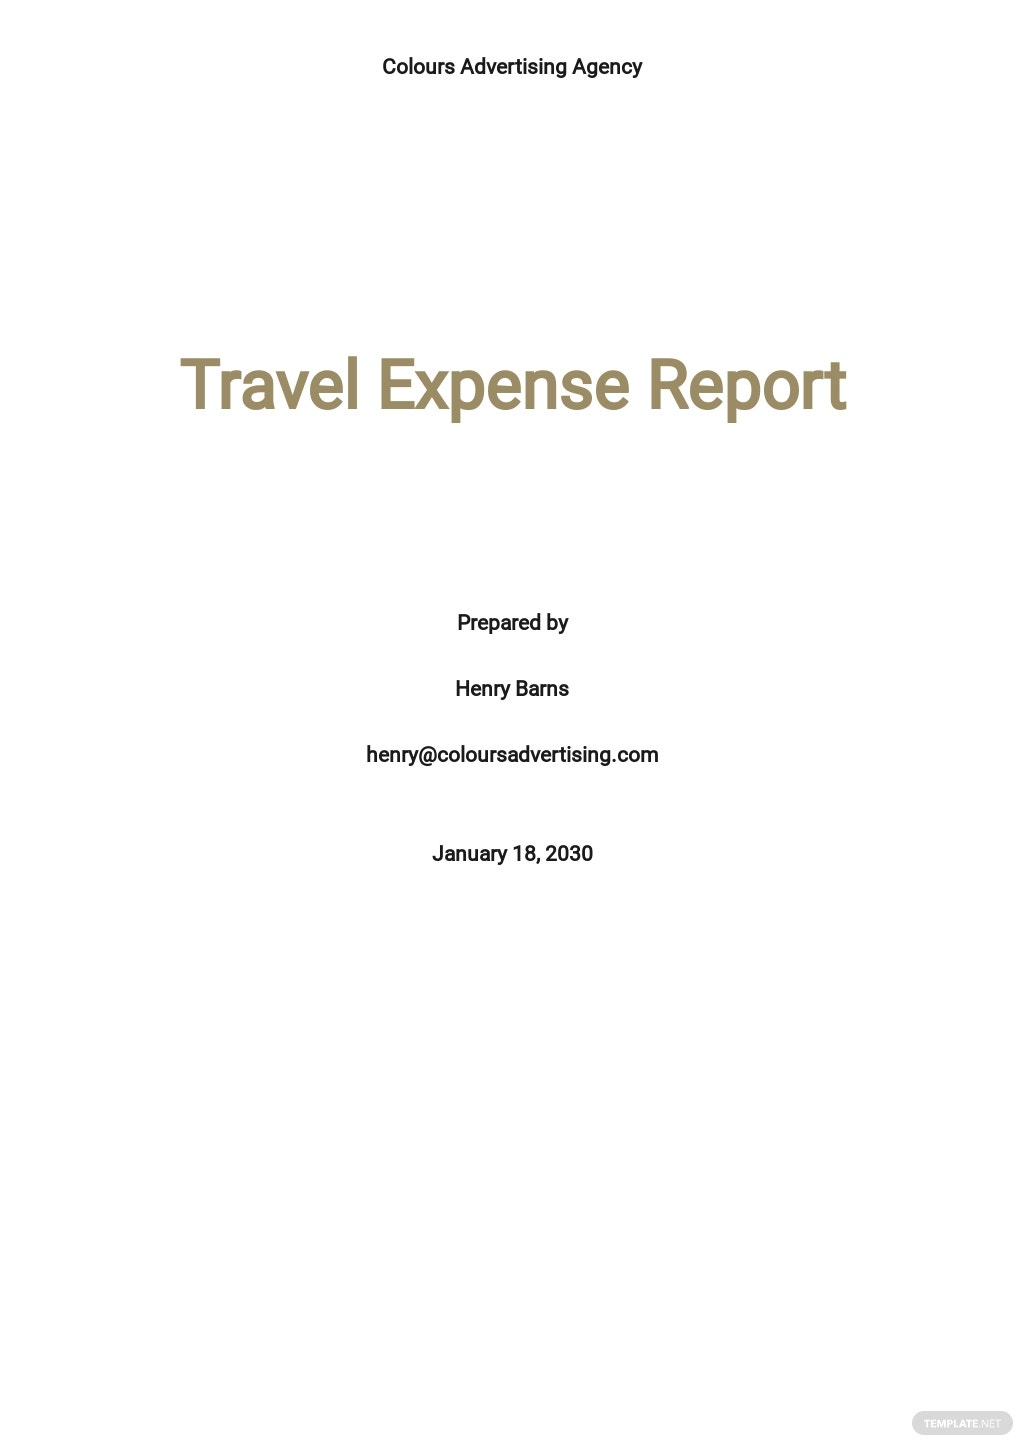 Simple Travel Expense Report Template.jpe